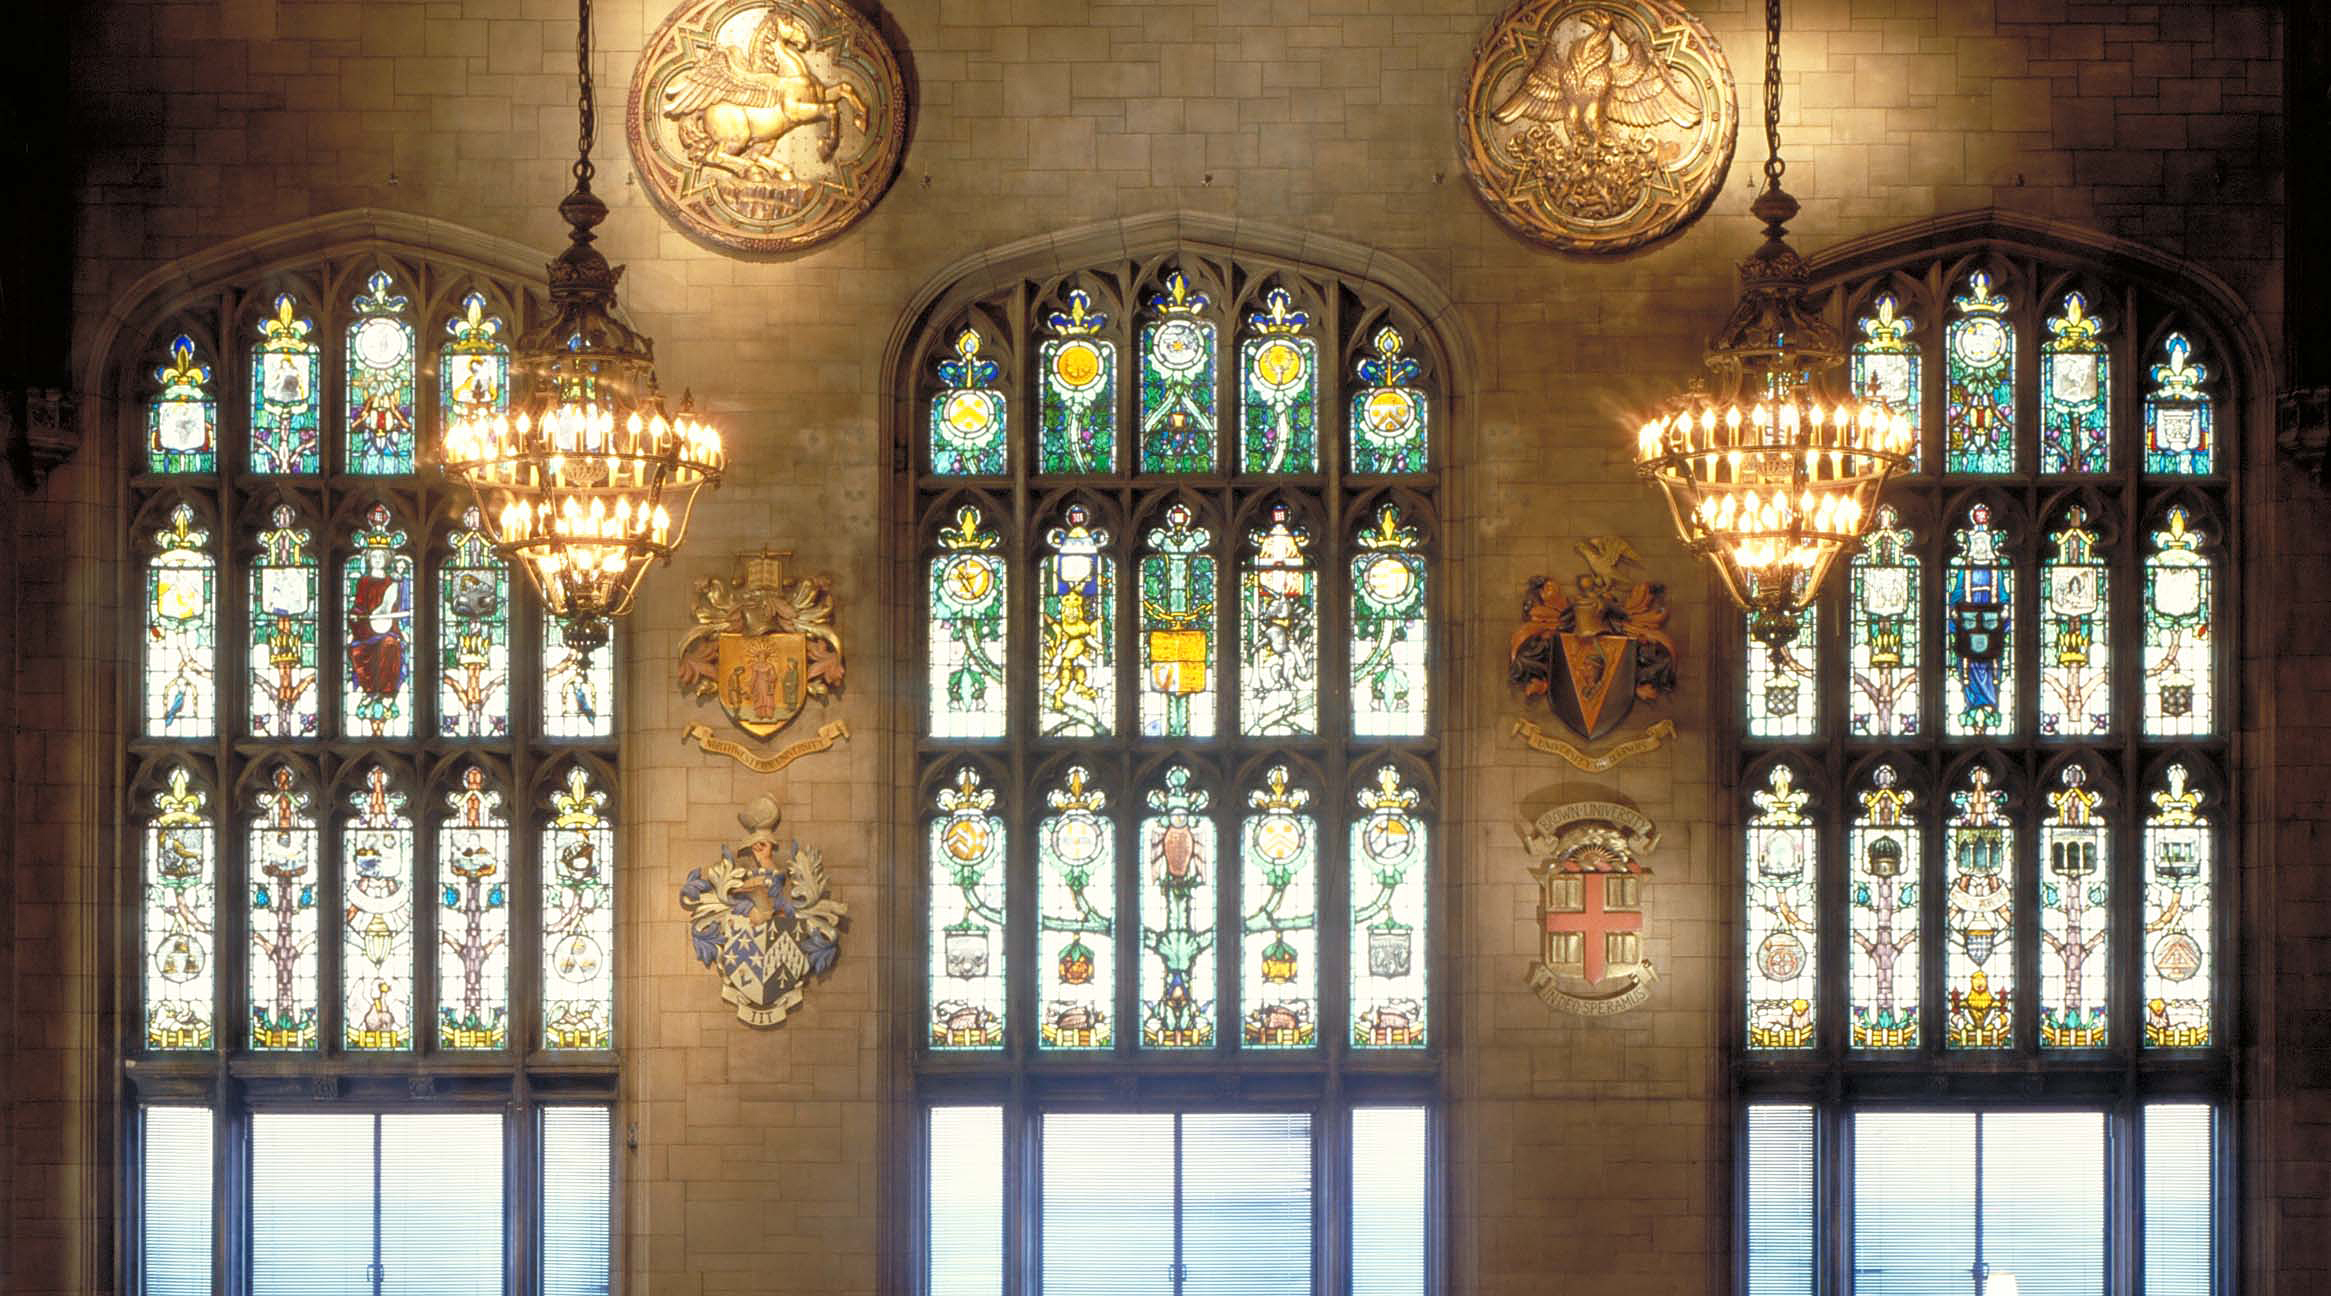 Venue: Cathedral Hall, University Club of Chicago